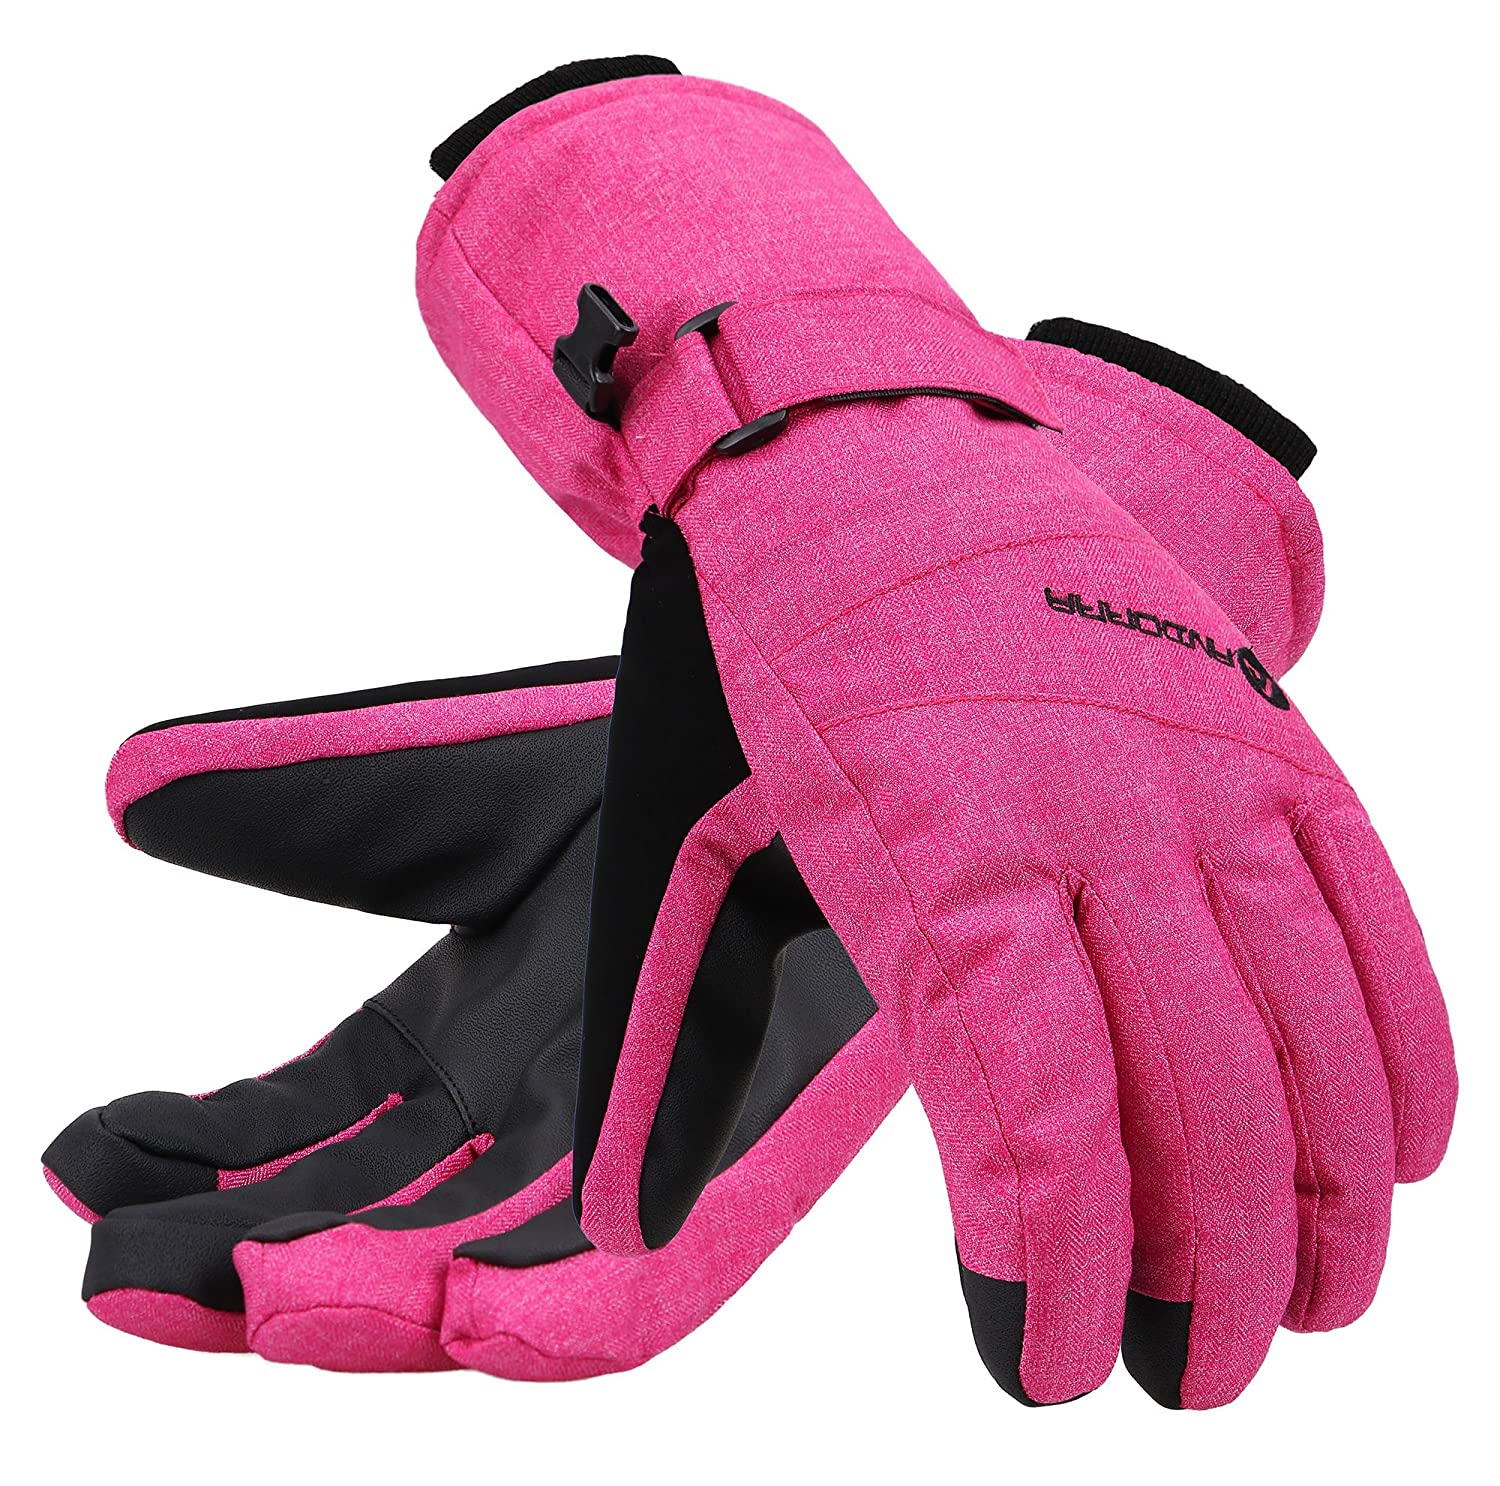 Andorra Women's Classic Zippered Pocket Touchscreen Ski Glove